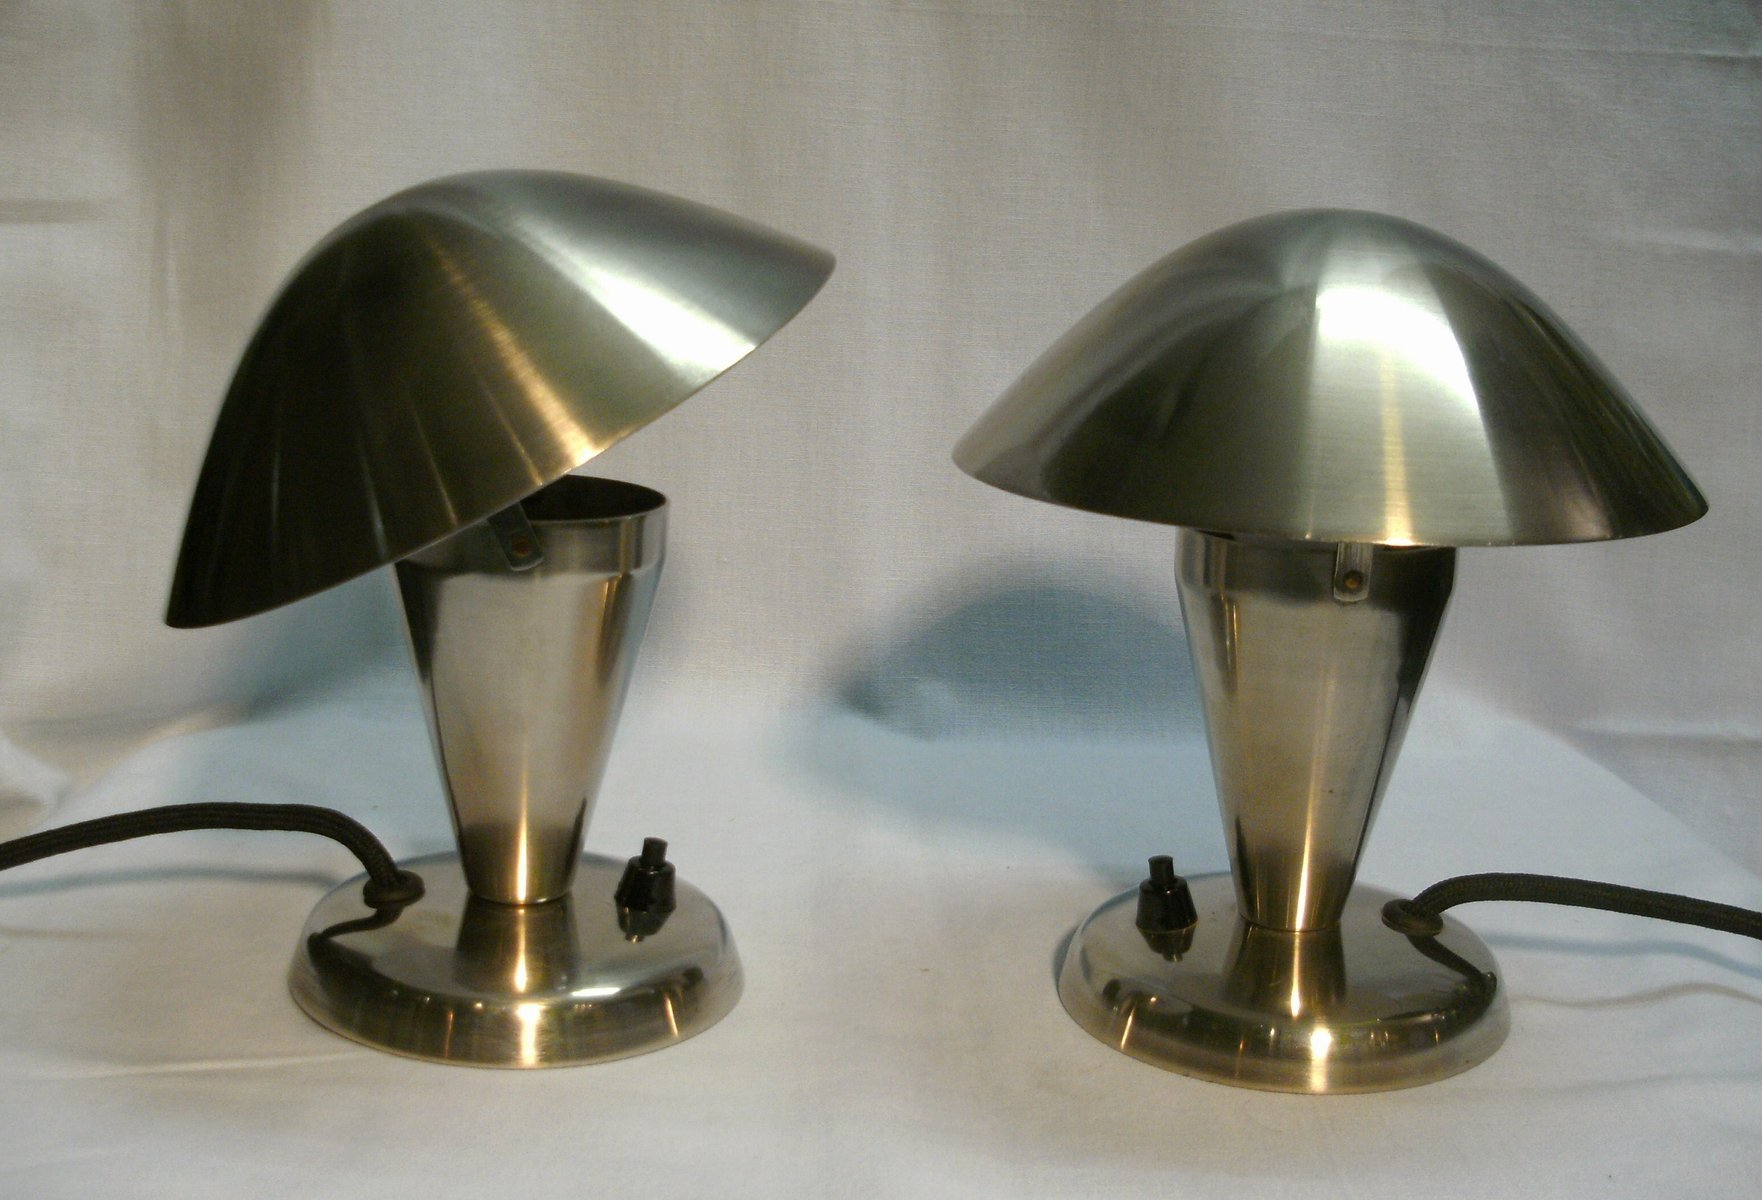 small table lamps from napako 1930s set of 2 for sale at. Black Bedroom Furniture Sets. Home Design Ideas